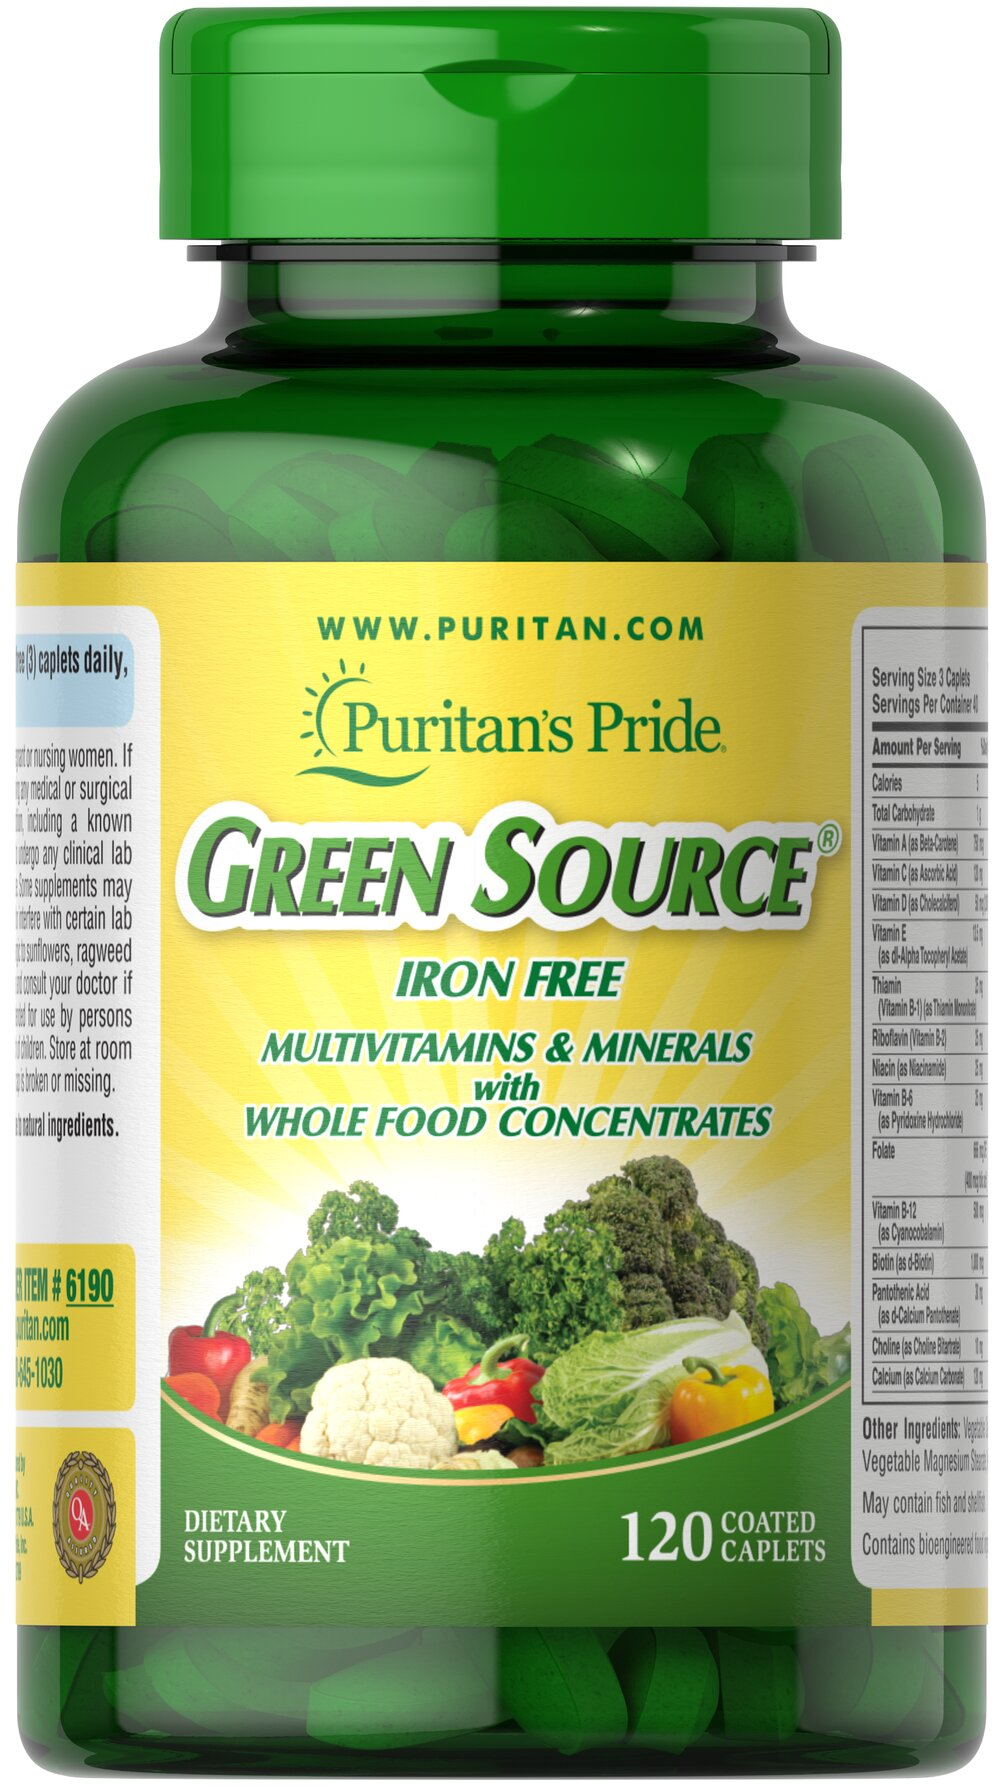 Green Source® Iron Free Multivitamin & Minerals <p>This concentrated formula is Iron Free and contains potent food source nutrients to provide essential vitamins, minerals, enzymes and amino acids. It also provides all the naturally occurring active constituents of whole foods. </p> 120 Caplets  $35.99